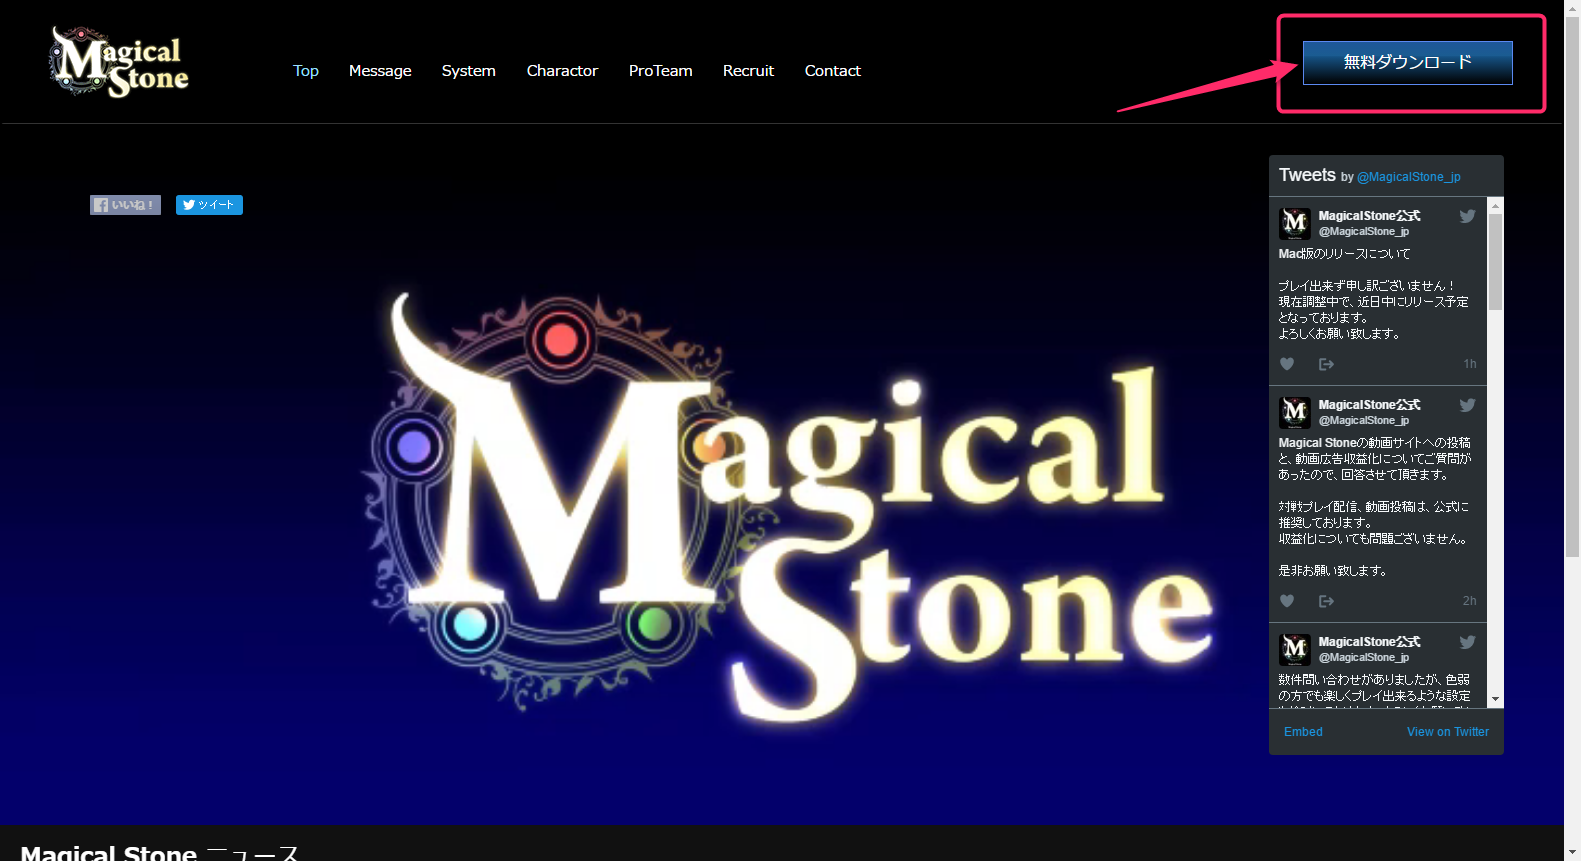 magical-stone-download-button